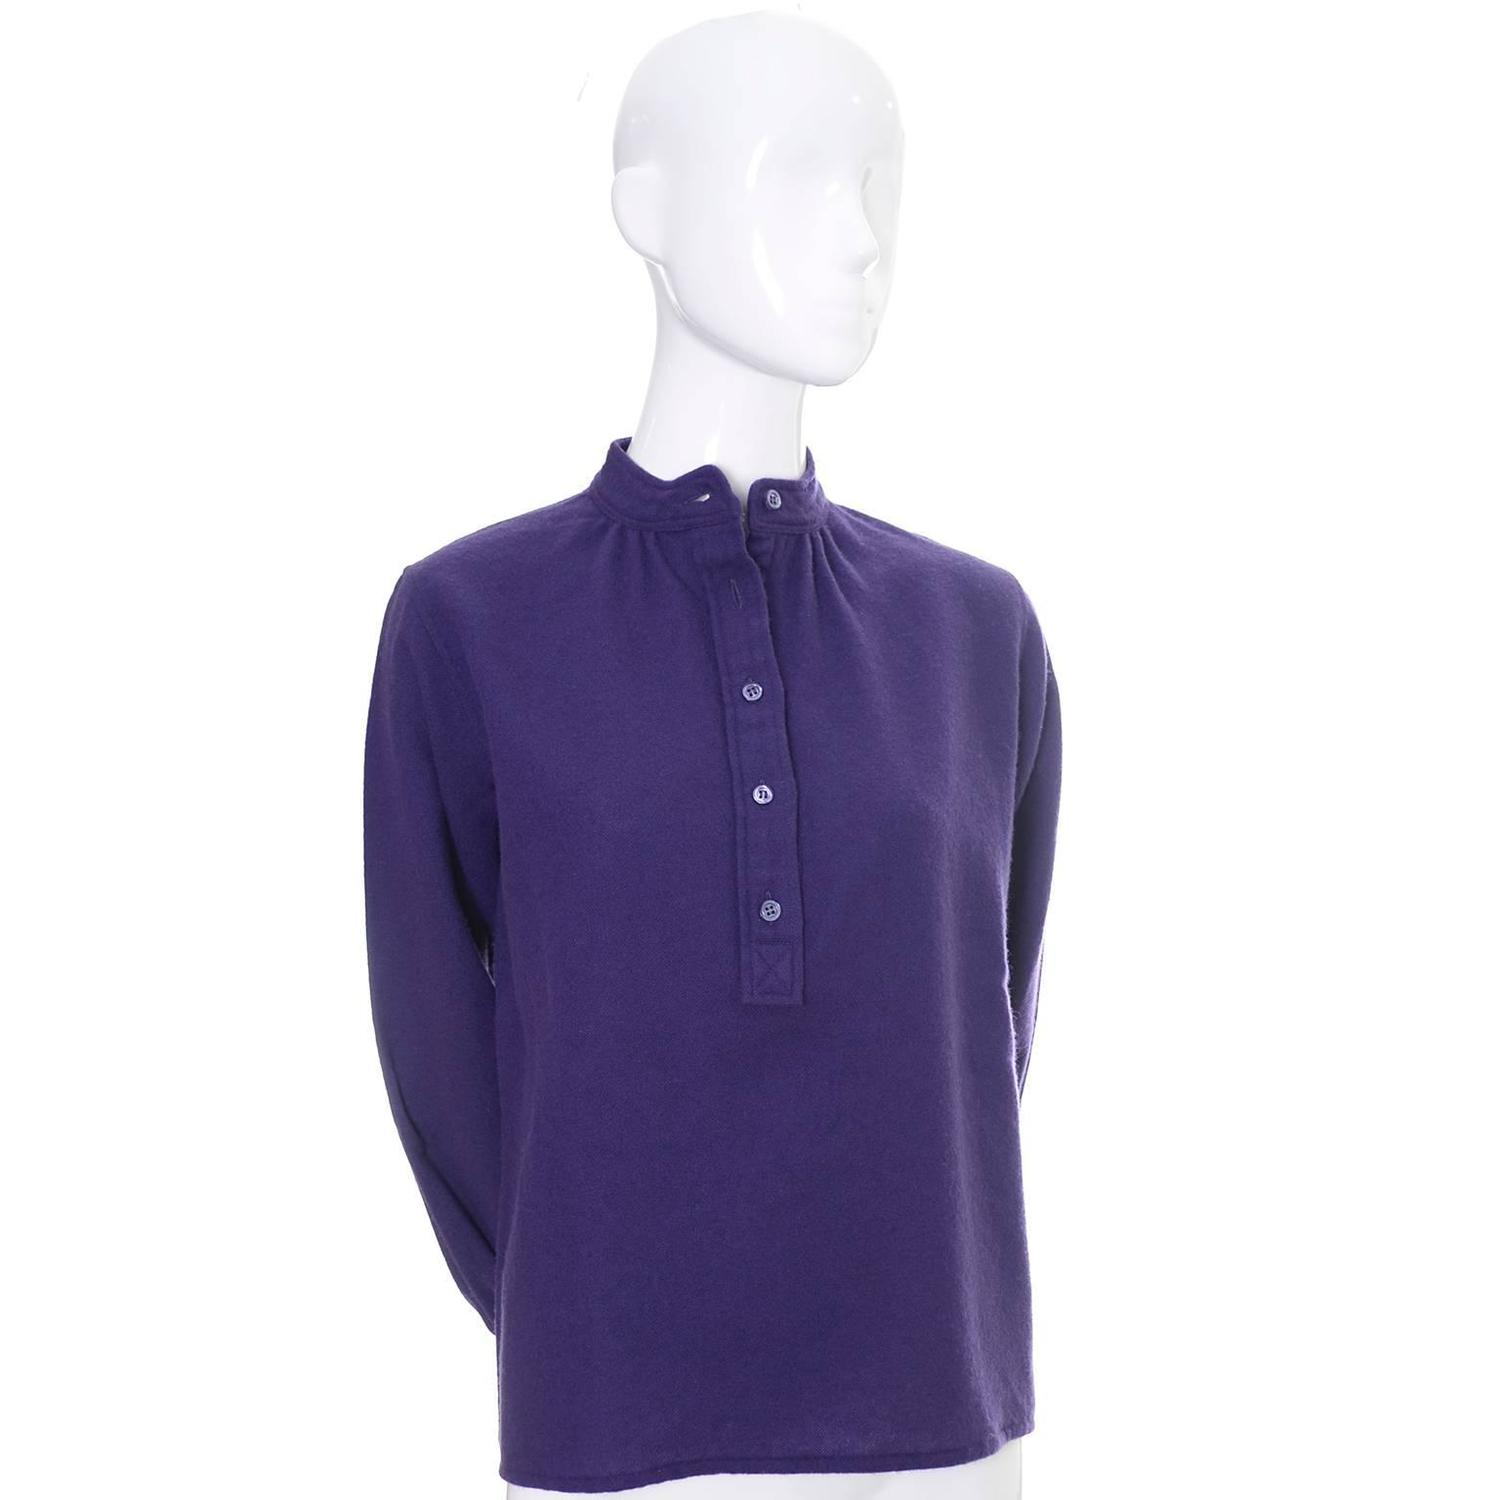 Ysl Purple Peasant Blouse 73